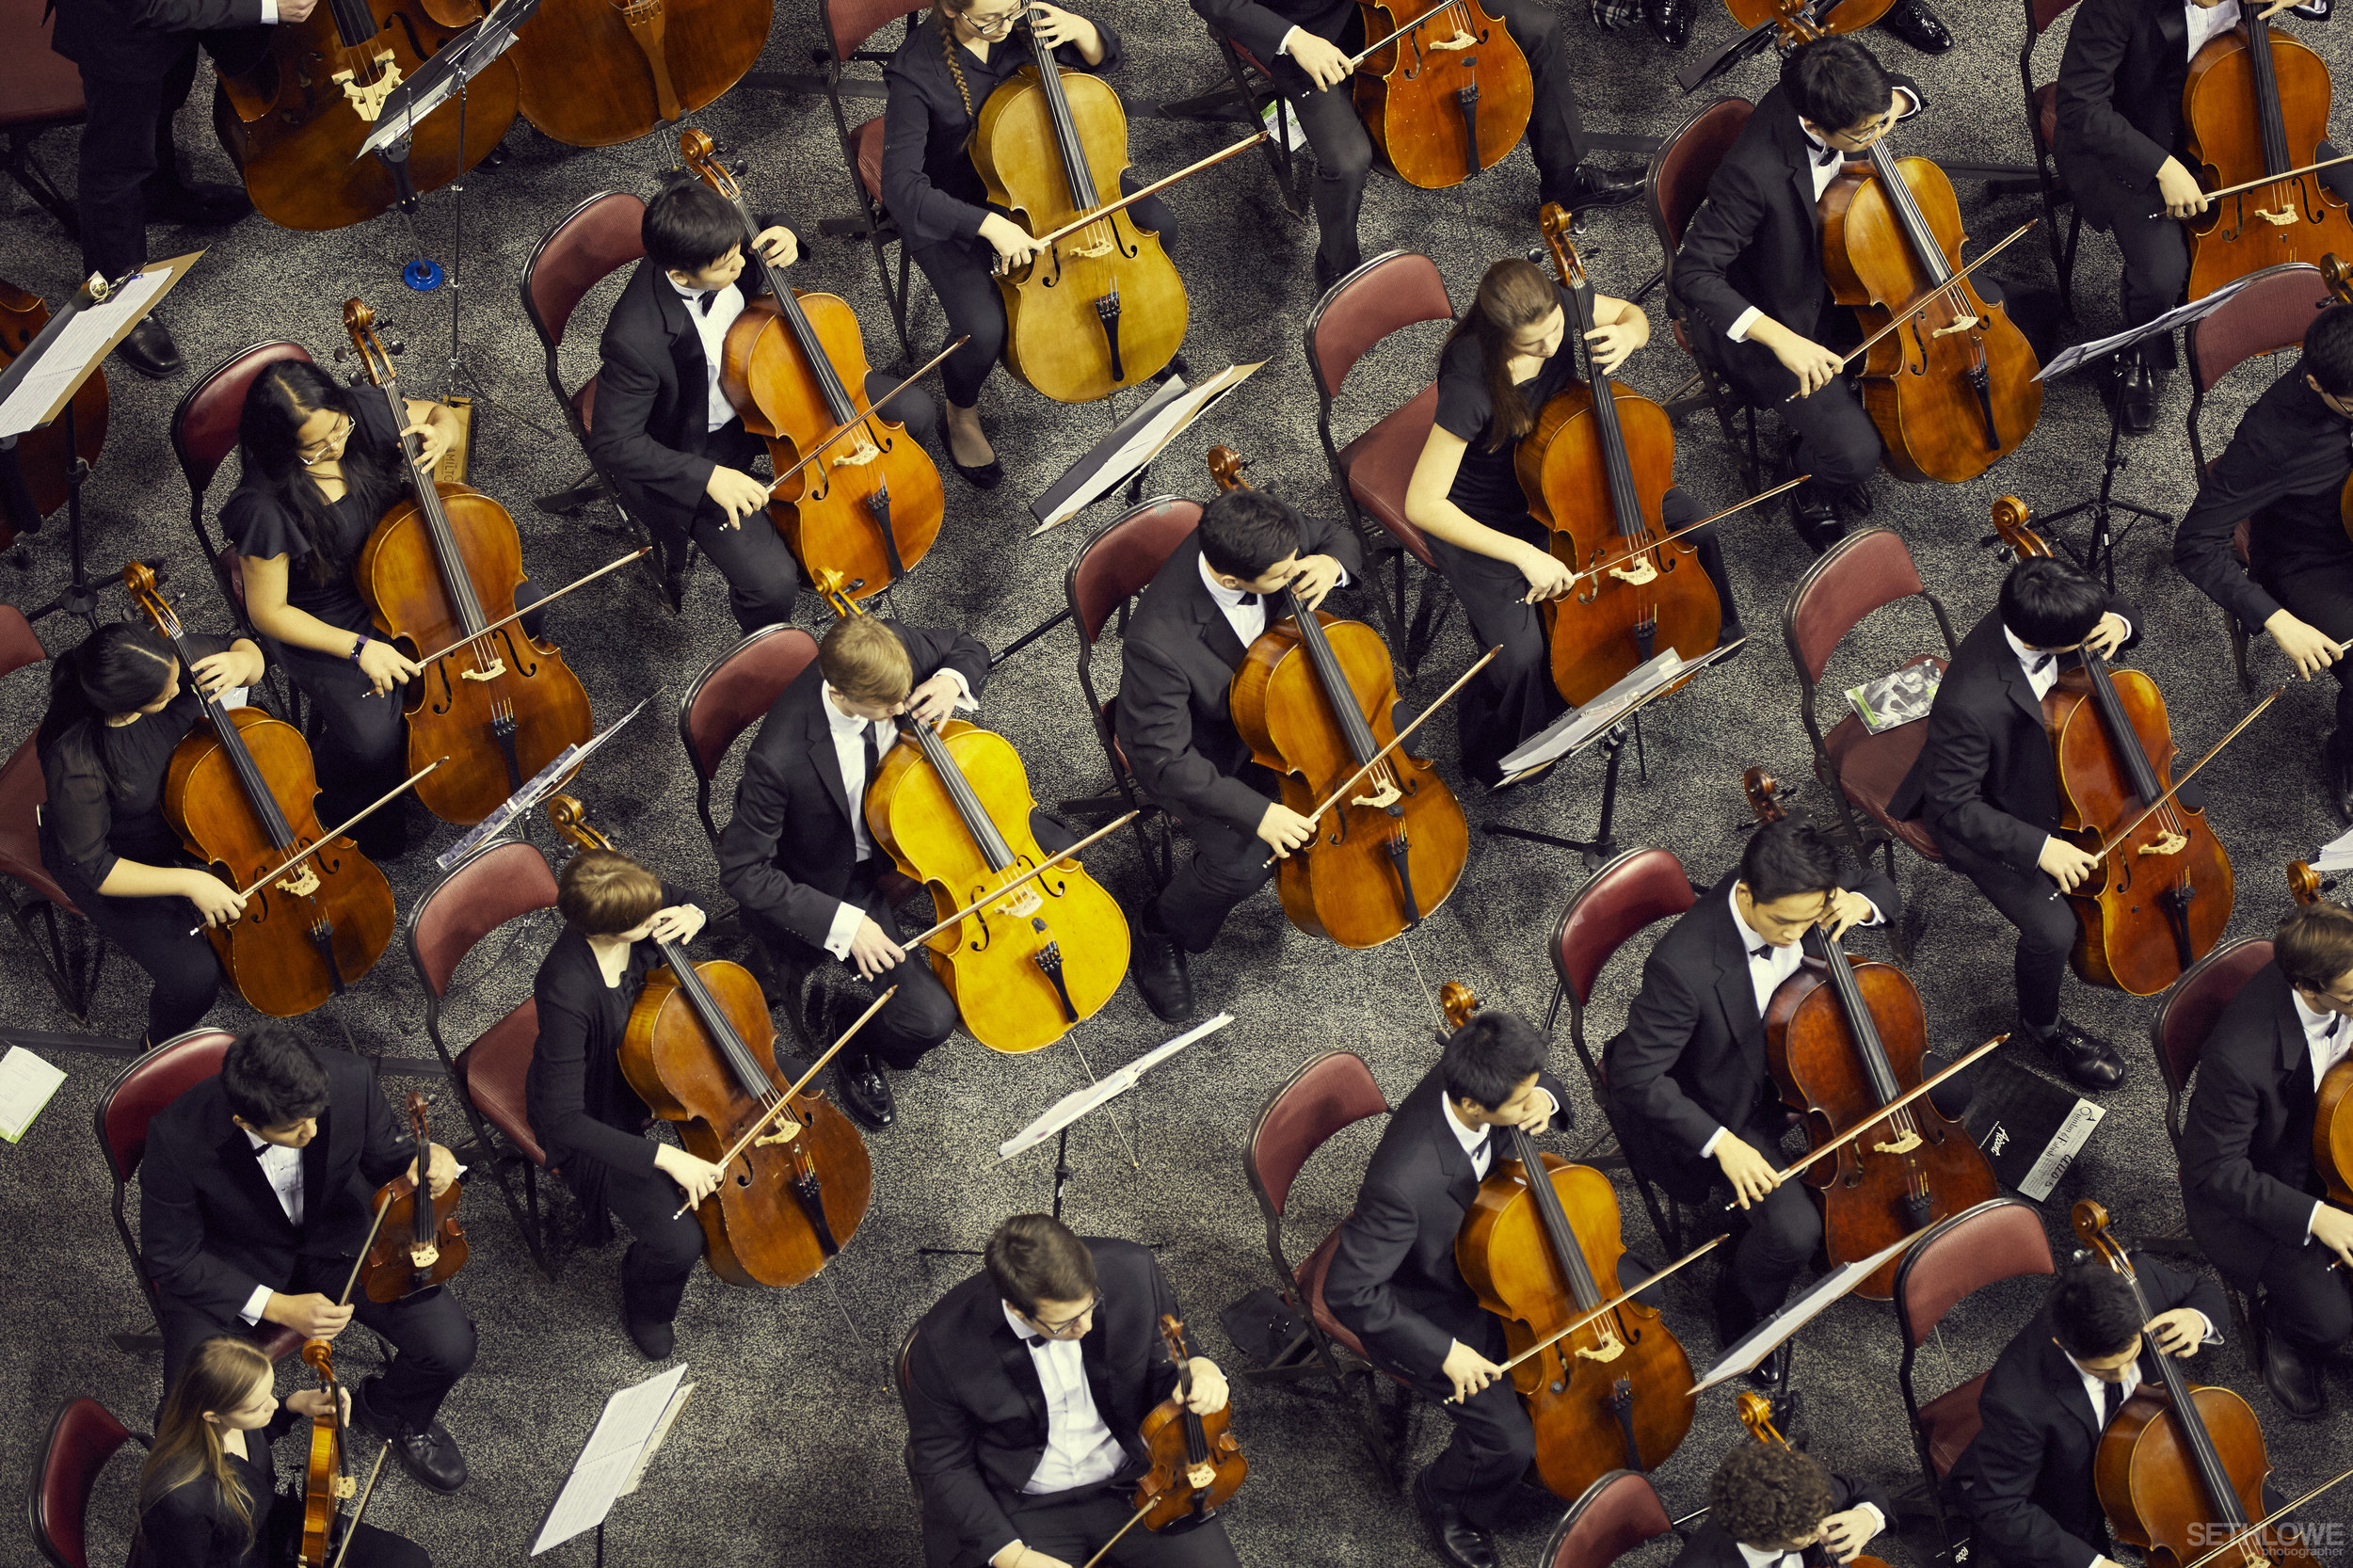 Overhead photo of cellists performing at the All-State Concert with the orchestra; click through to Senior Level Required Music